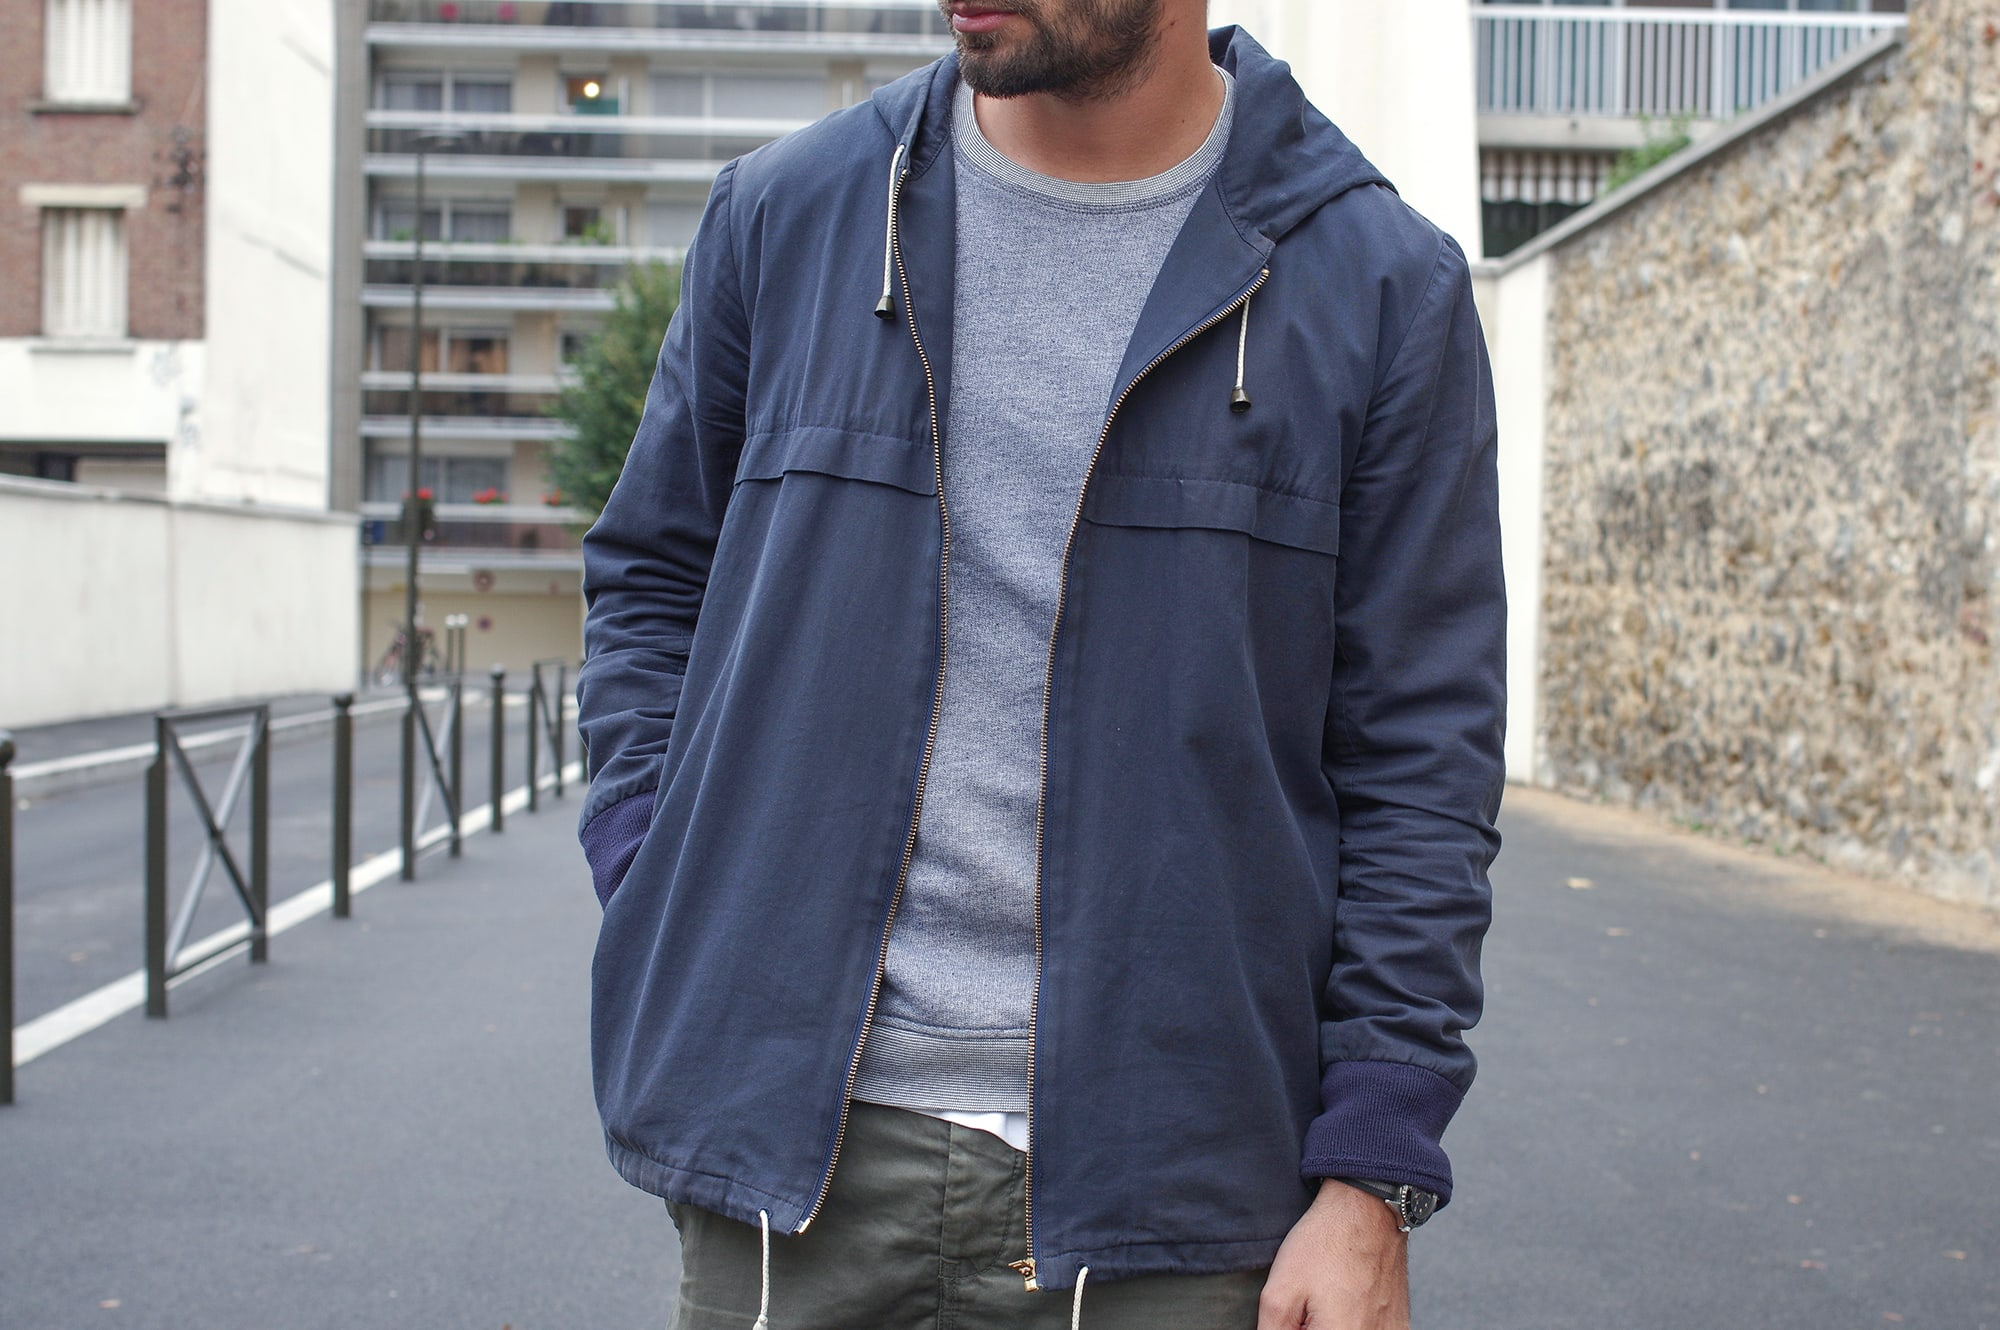 outfit with Norse Projects aros heavy chinos, apc jacket and new balance 576 sneakers